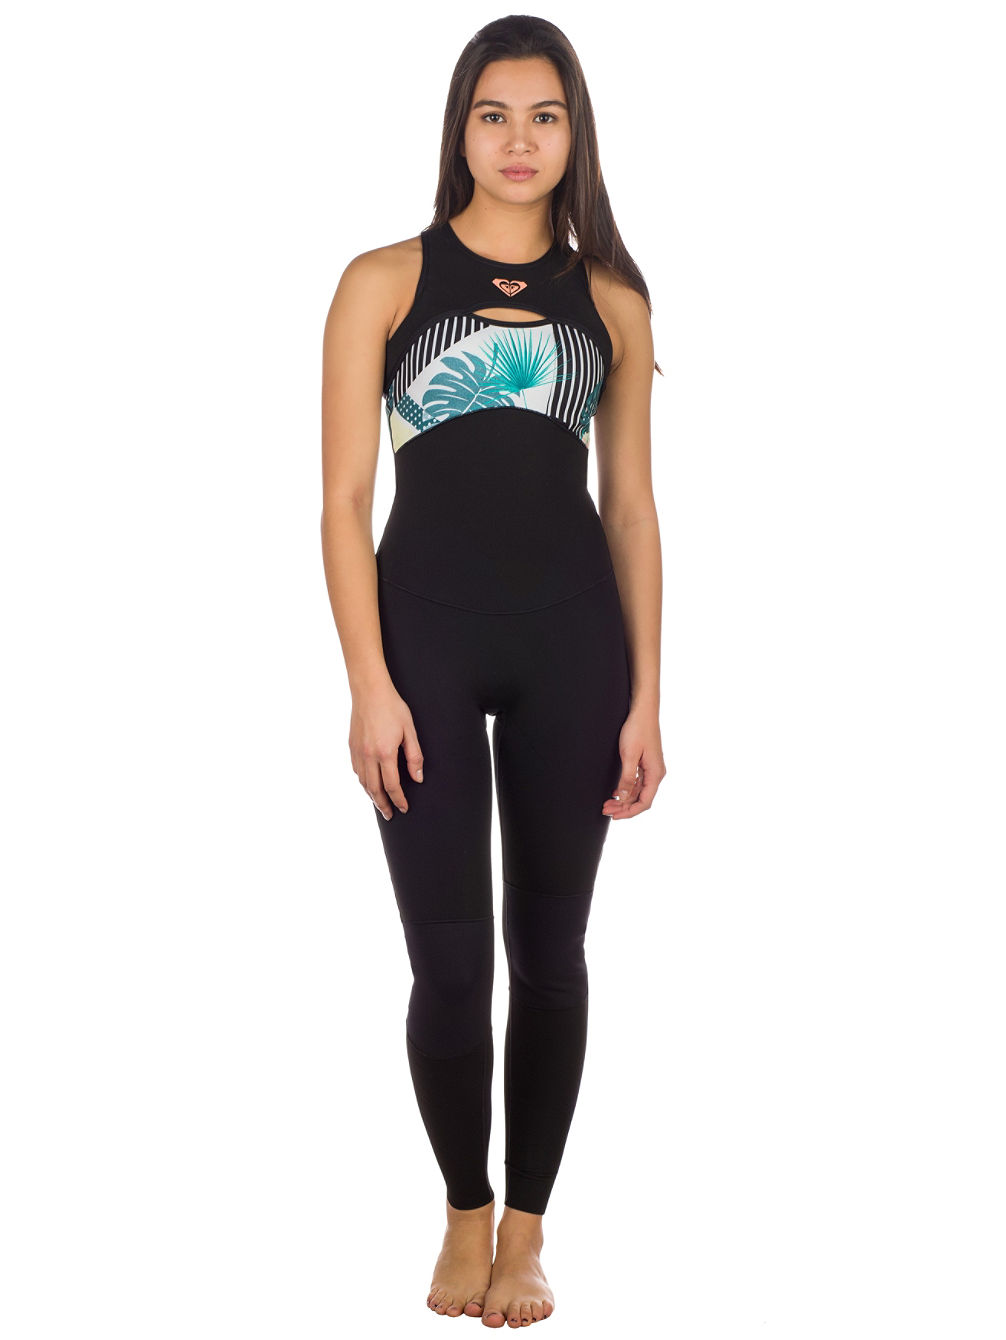 1.5 Pop Surf Long John B-Lck Neopreno